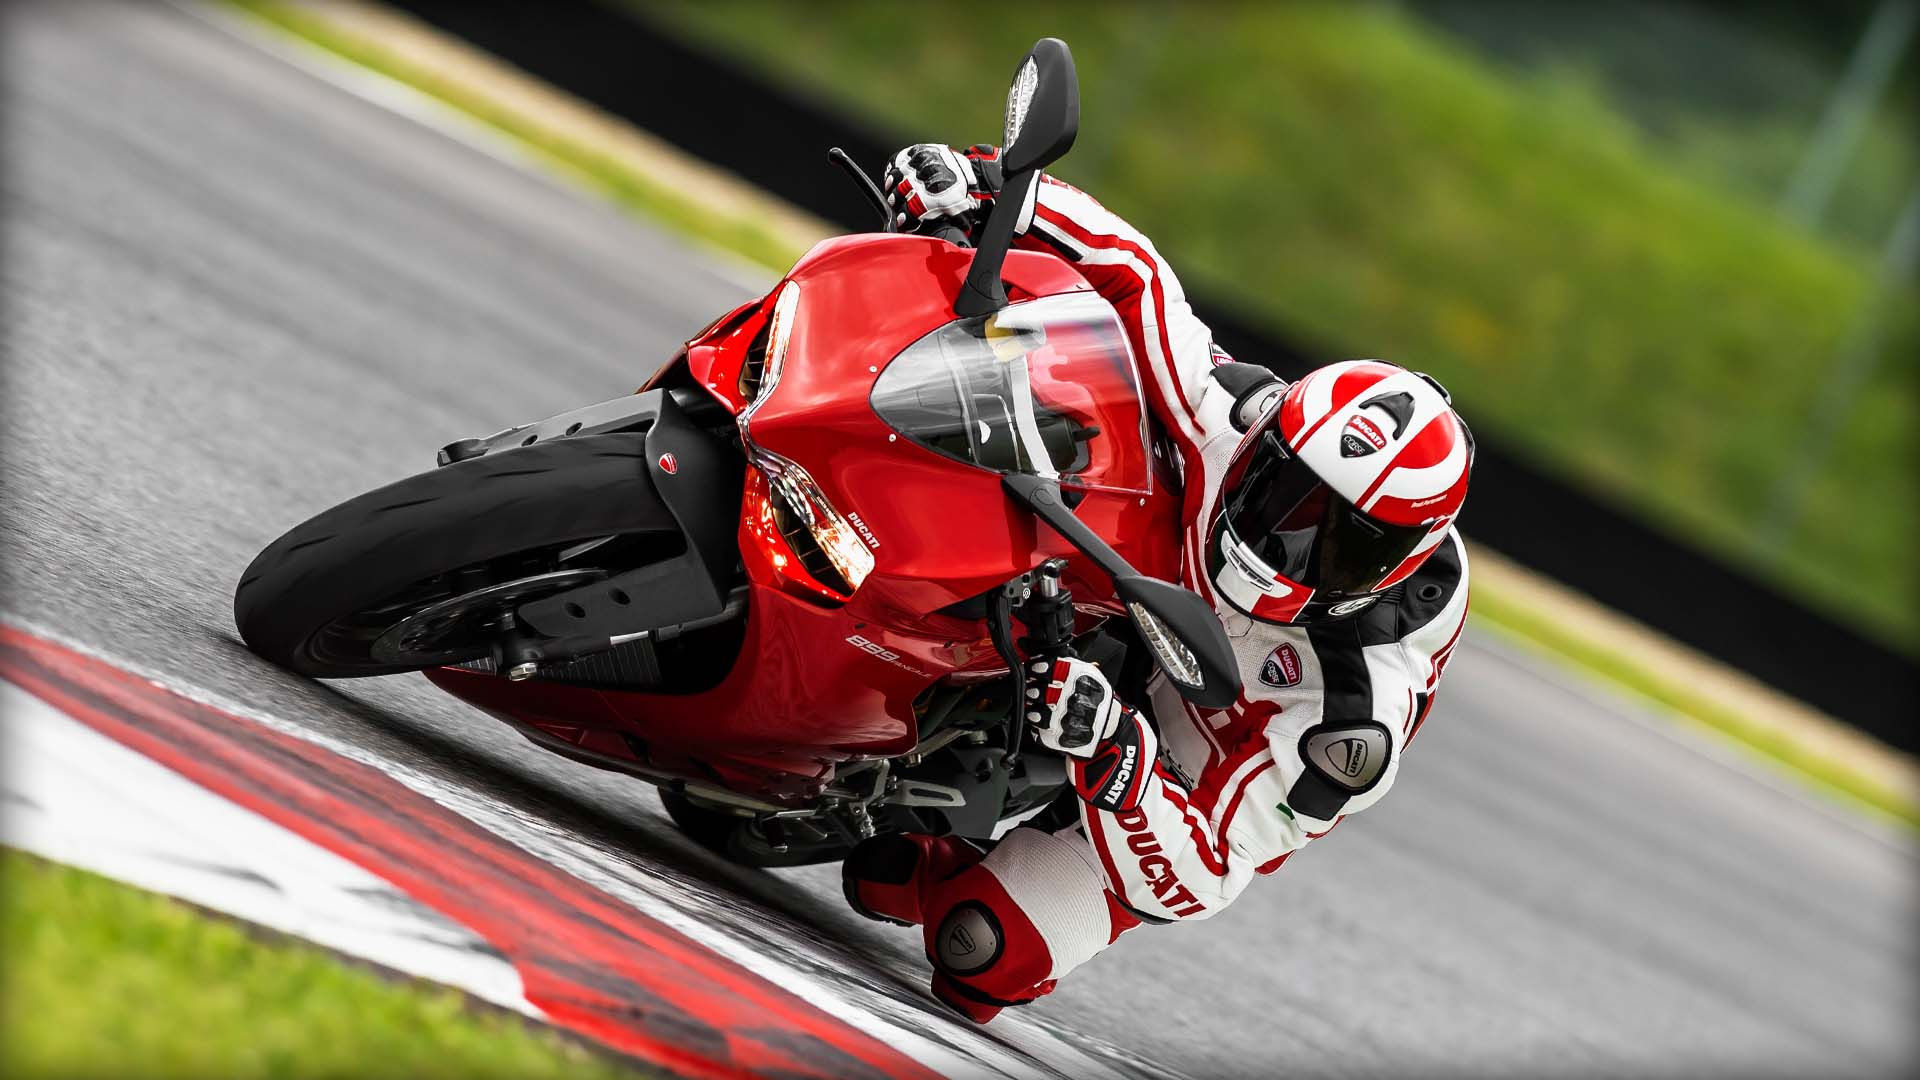 2014 Ducati    Ducati Panigale 899 - Your road to the track